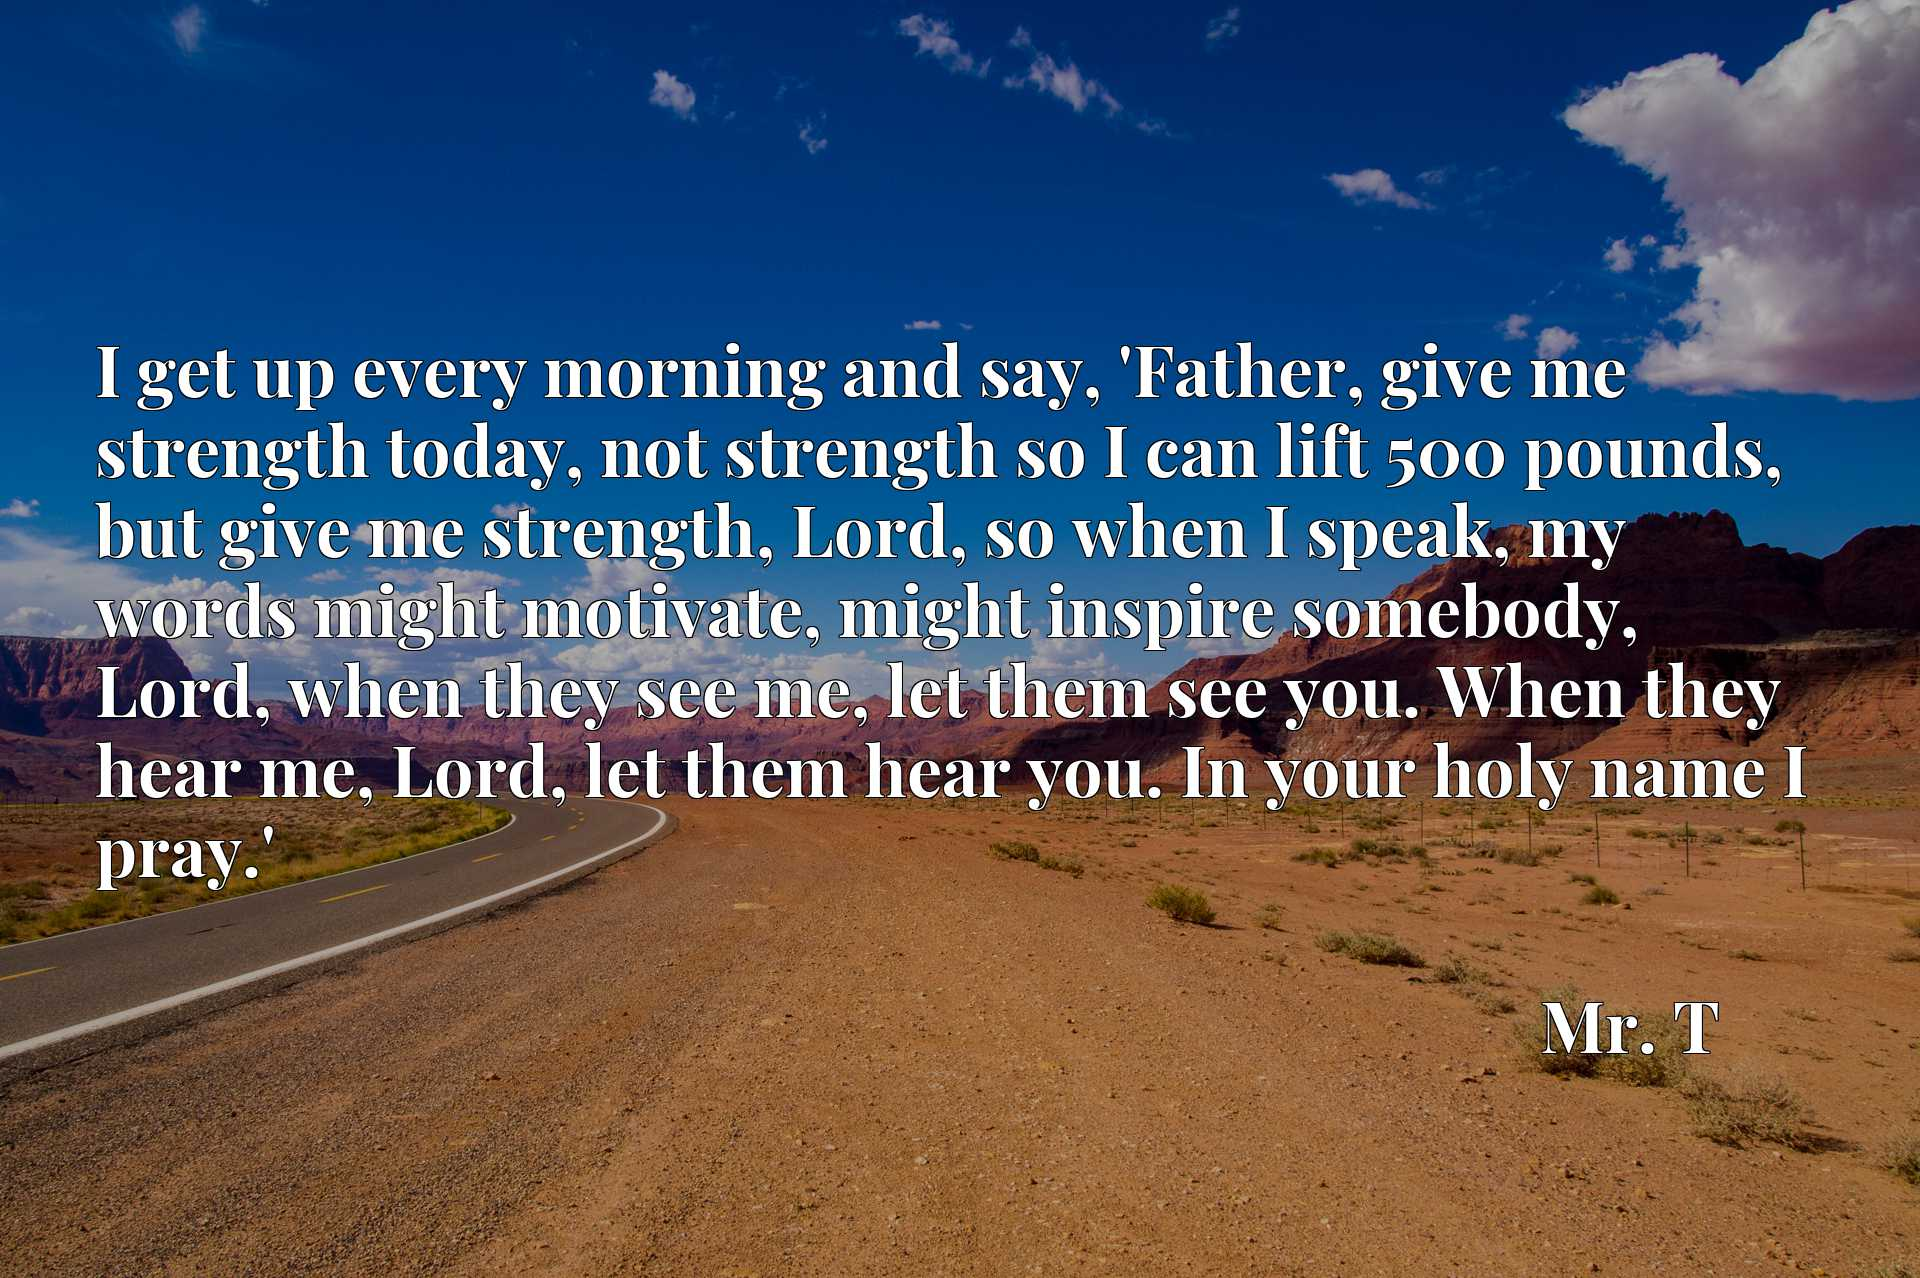 I get up every morning and say, 'Father, give me strength today, not strength so I can lift 500 pounds, but give me strength, Lord, so when I speak, my words might motivate, might inspire somebody, Lord, when they see me, let them see you. When they hear me, Lord, let them hear you. In your holy name I pray.'